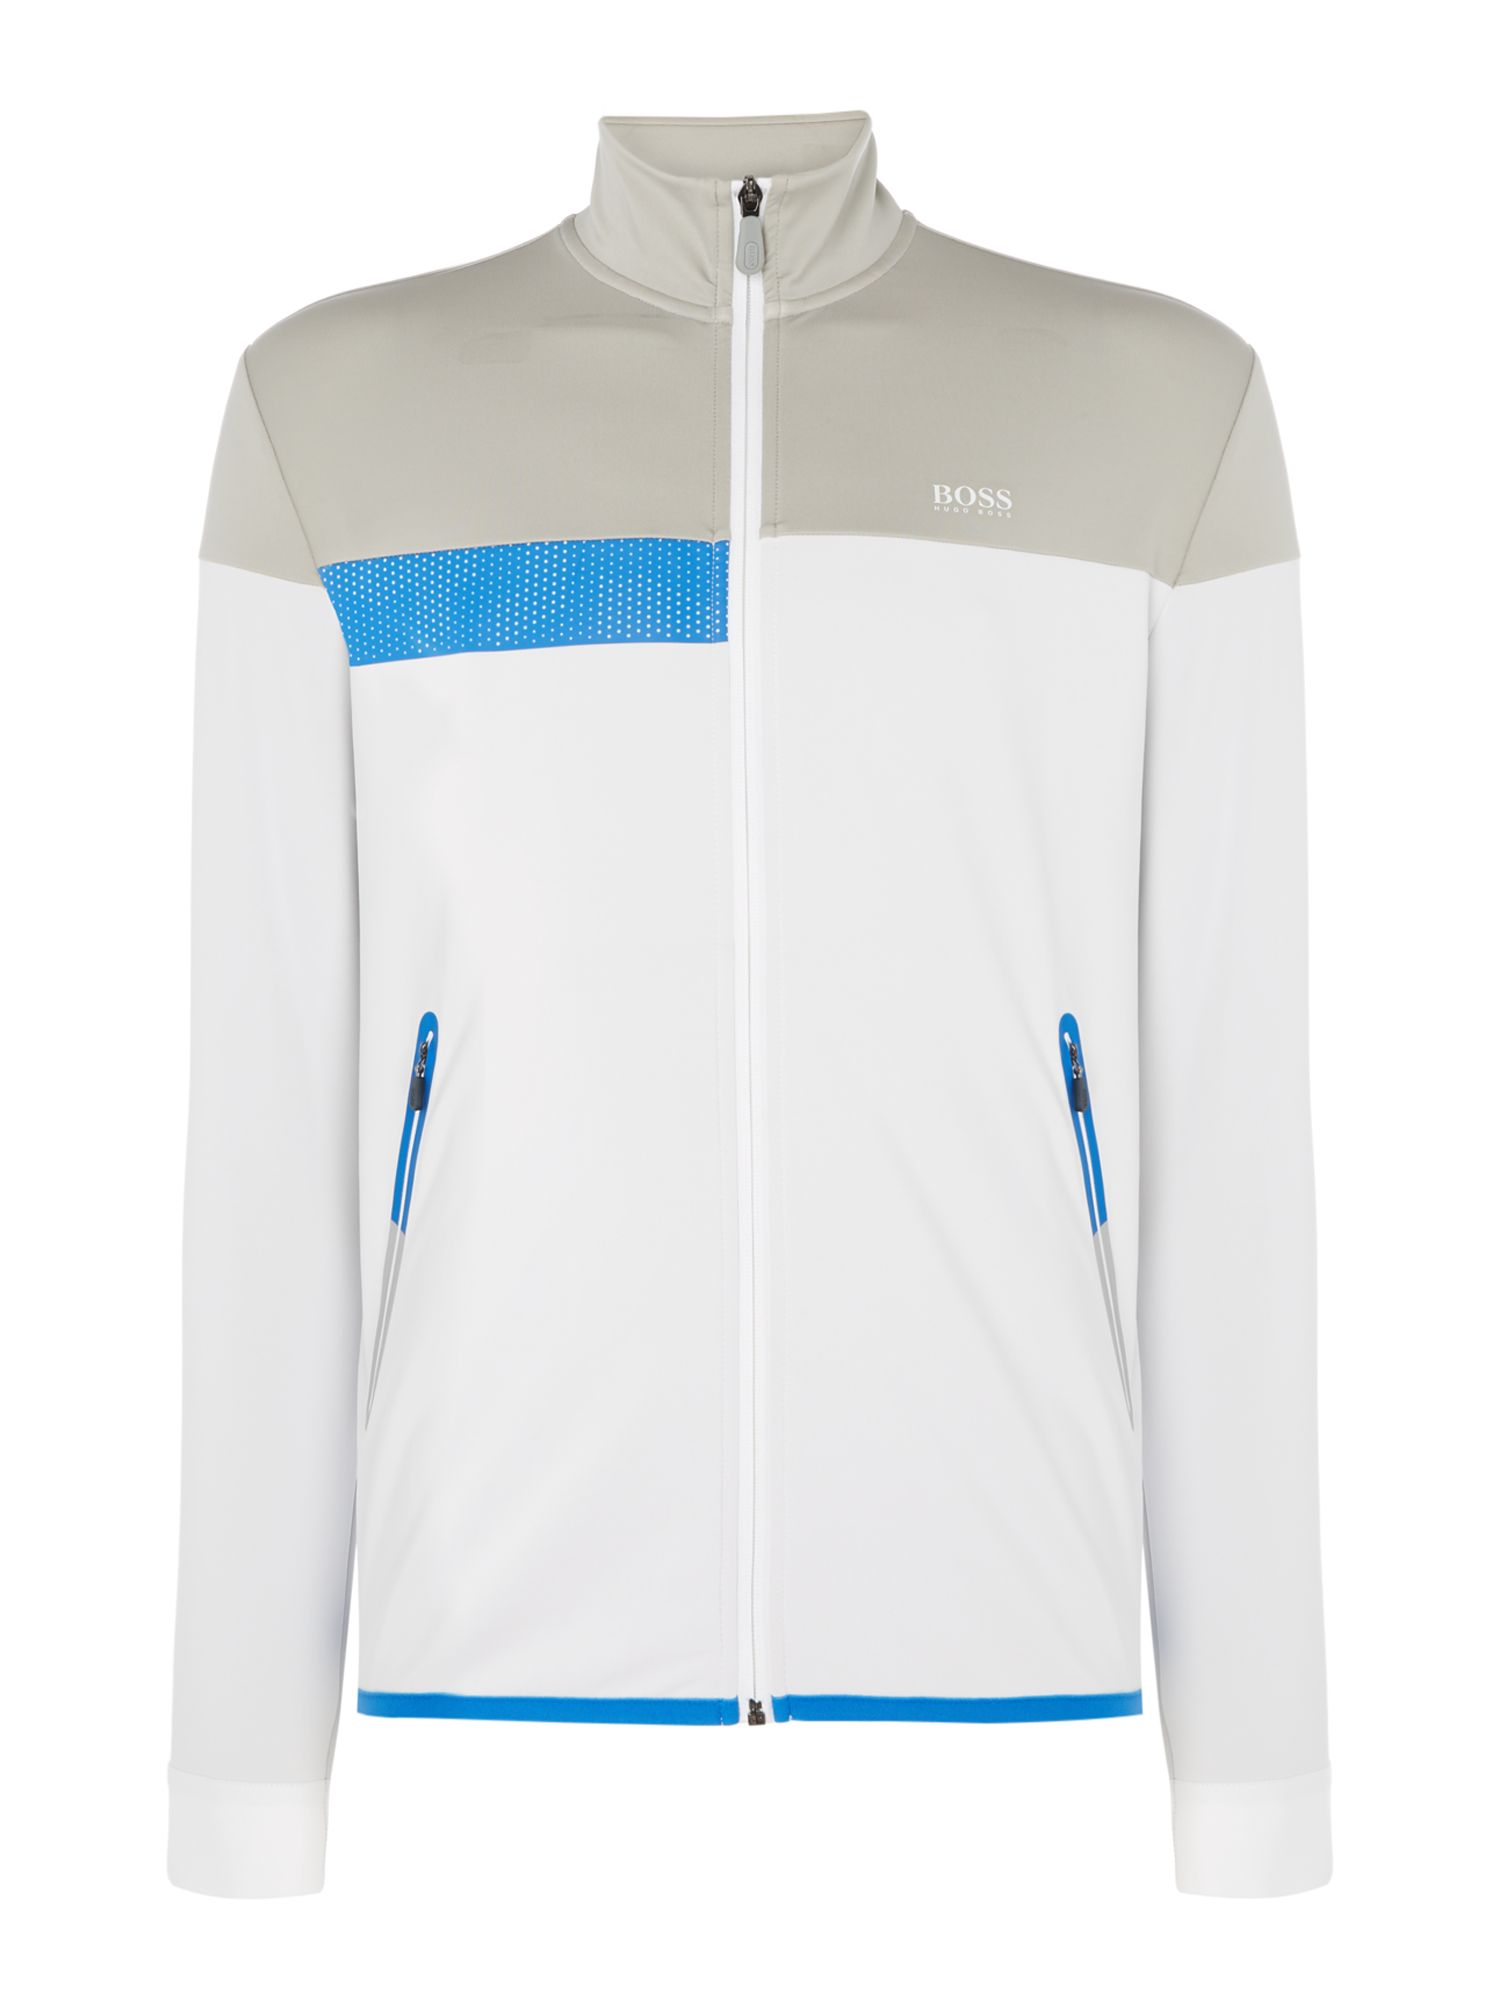 Men's Hugo Boss Sejotech taped pocket zip-up technical sweatshirt, White